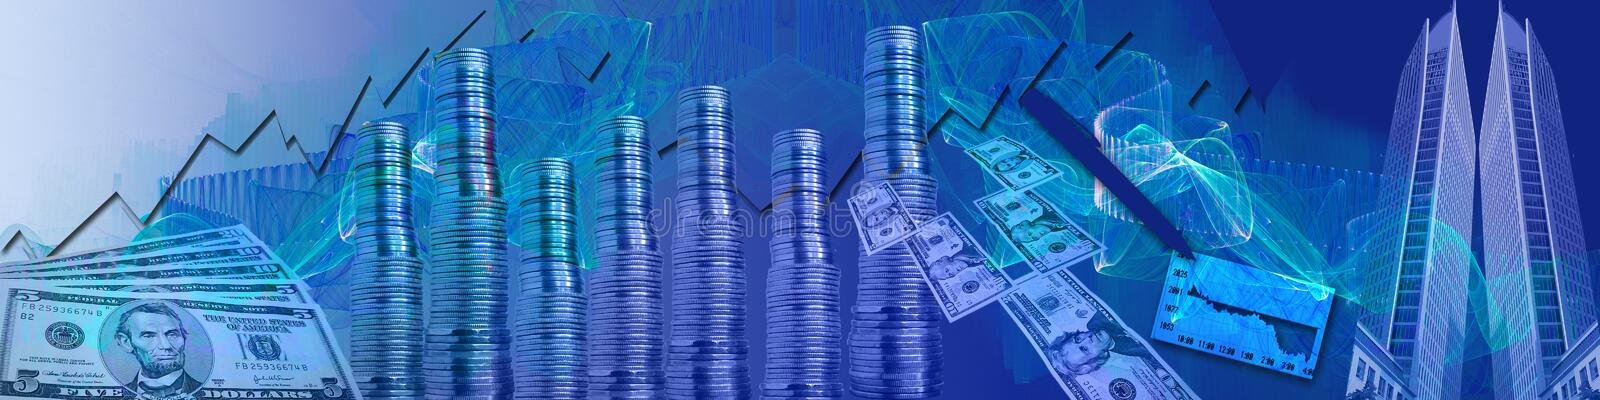 Header: Stock market. The paper money, money towers, statistics, pen and big buildings in this banner/headers are symbolic for the stock market and also for vector illustration